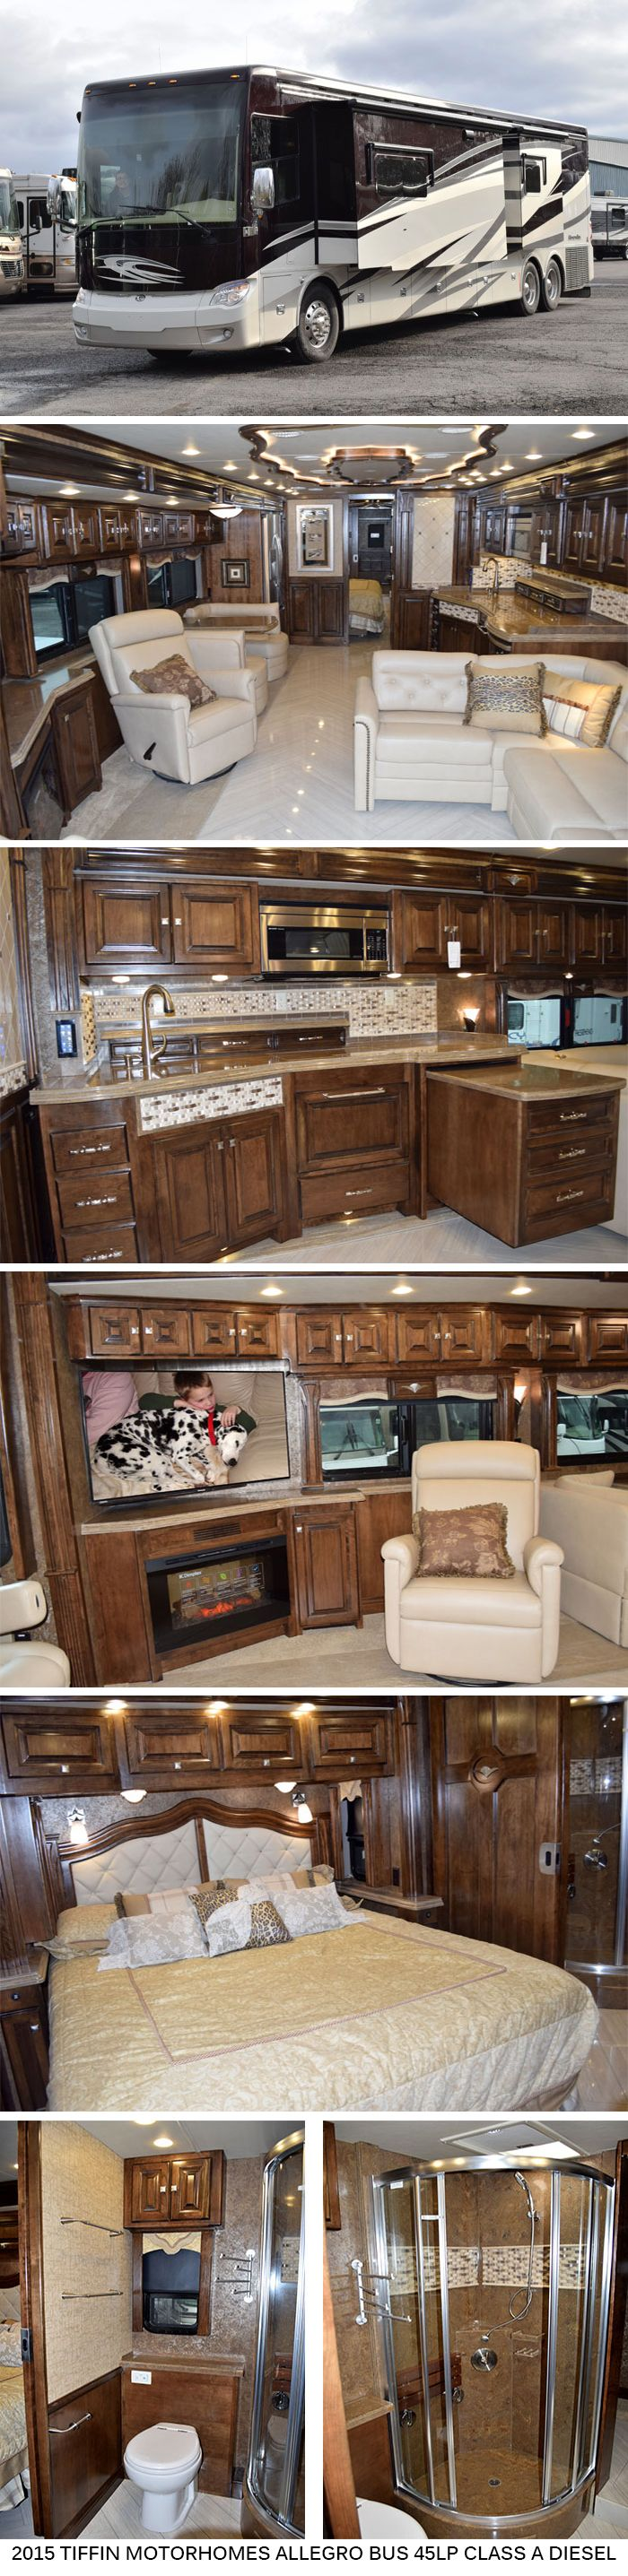 2015 Tiffin Motorhomes Allegro Bus 45LP - Class A Diesel